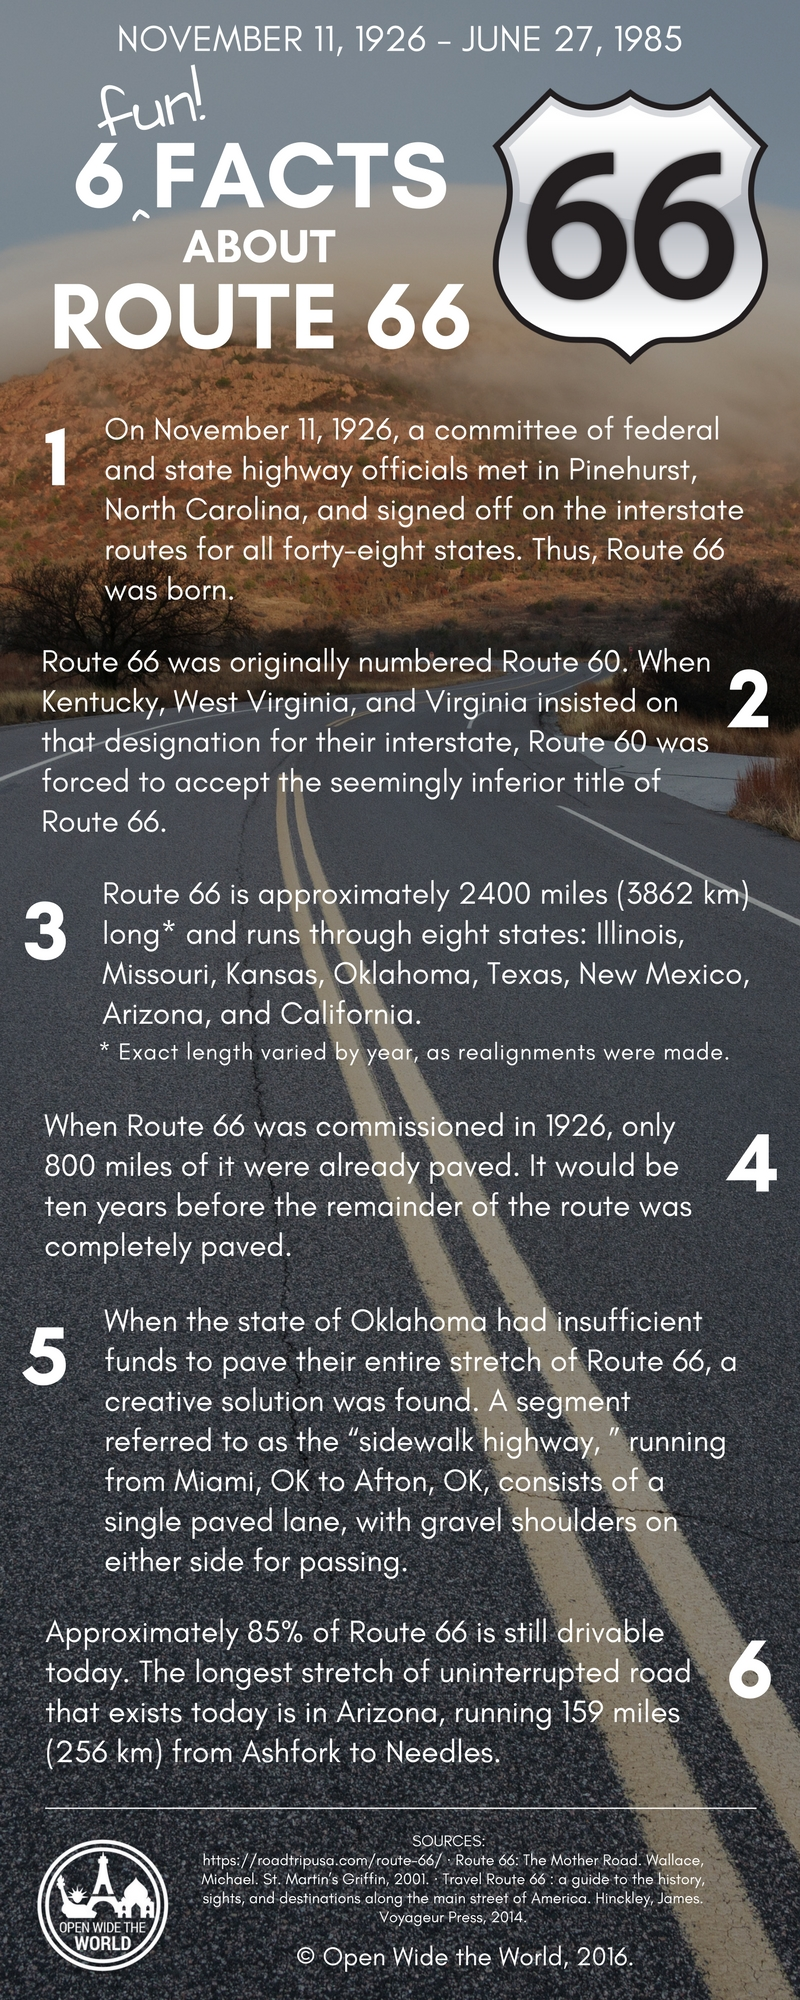 "Route 66, ""America's Mother Road,"" celebrates its birthday in November. Check out a few fun facts about the first 90 years along ""America's Main Street!"""